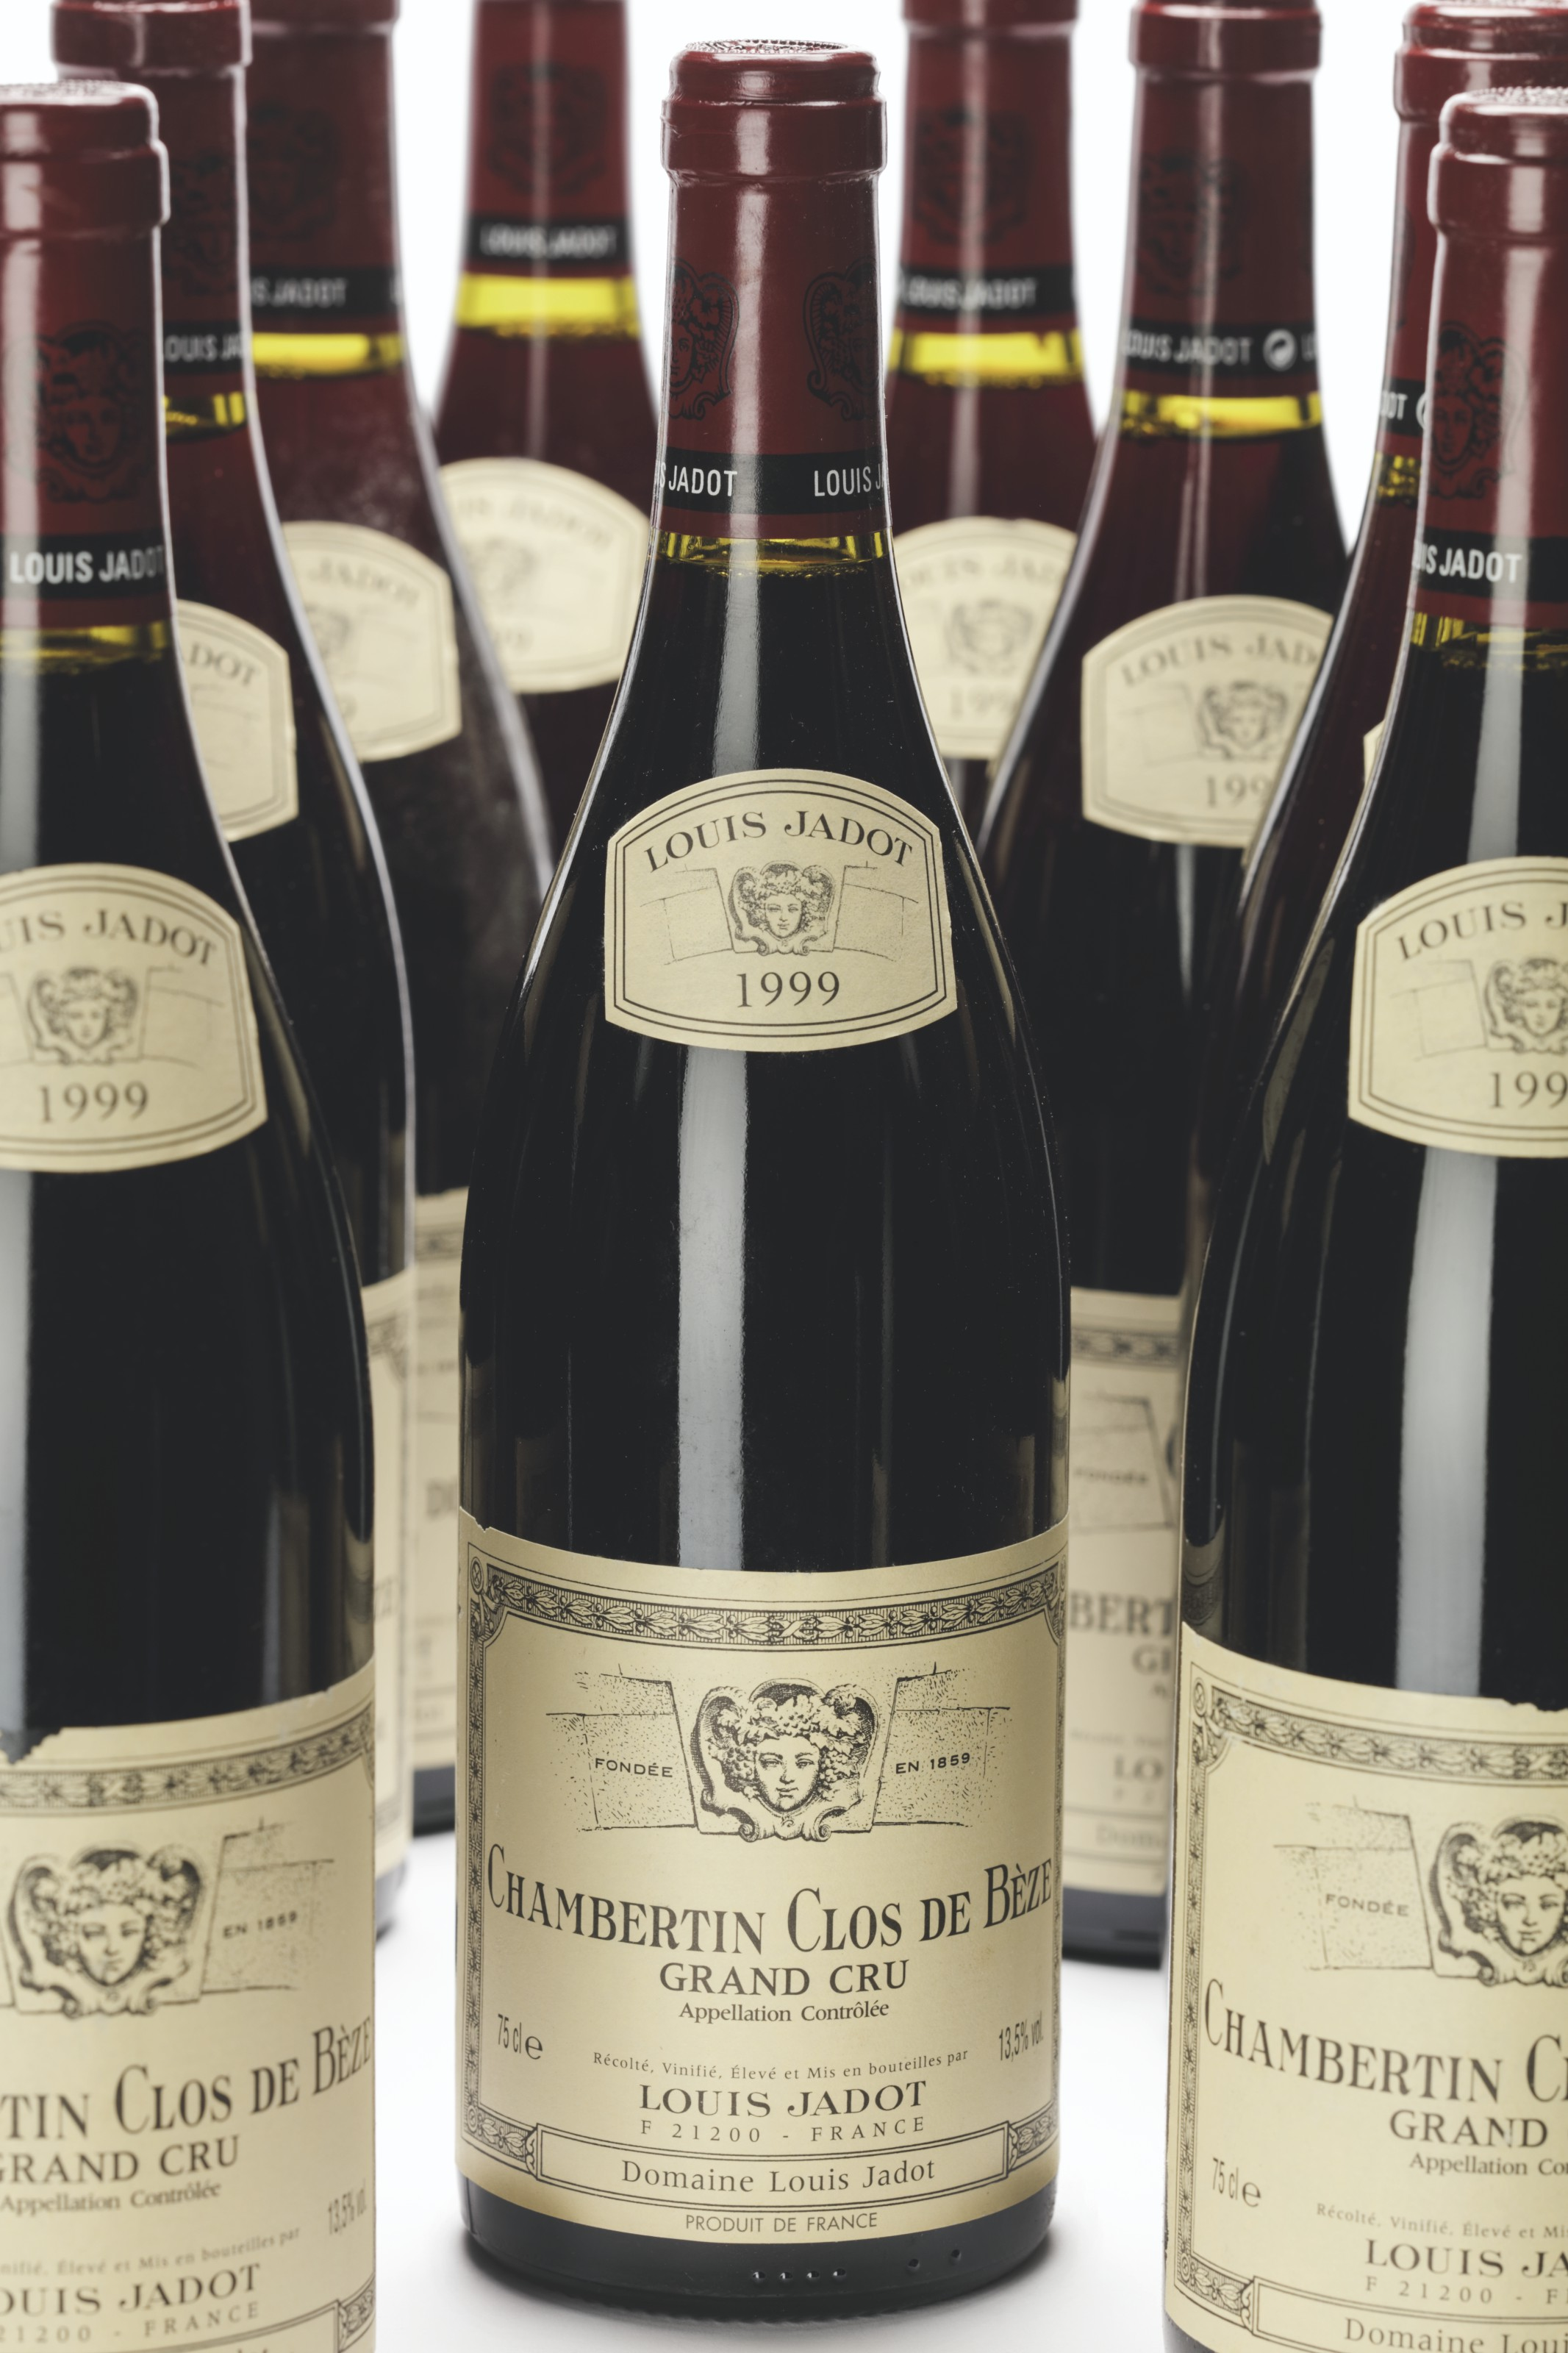 Louis Jadot, Chambertin Clos de Bèze 1999. Lot 894, 12 bottles per lot. Estimate £2,600-3,000. Offered in Finest and Rarest Wines and Spirits Featuring Two Superb Cellars, and Highlights from the Collection of the Earl of Snowdon, 17-18 June 2021 at Christie's in London